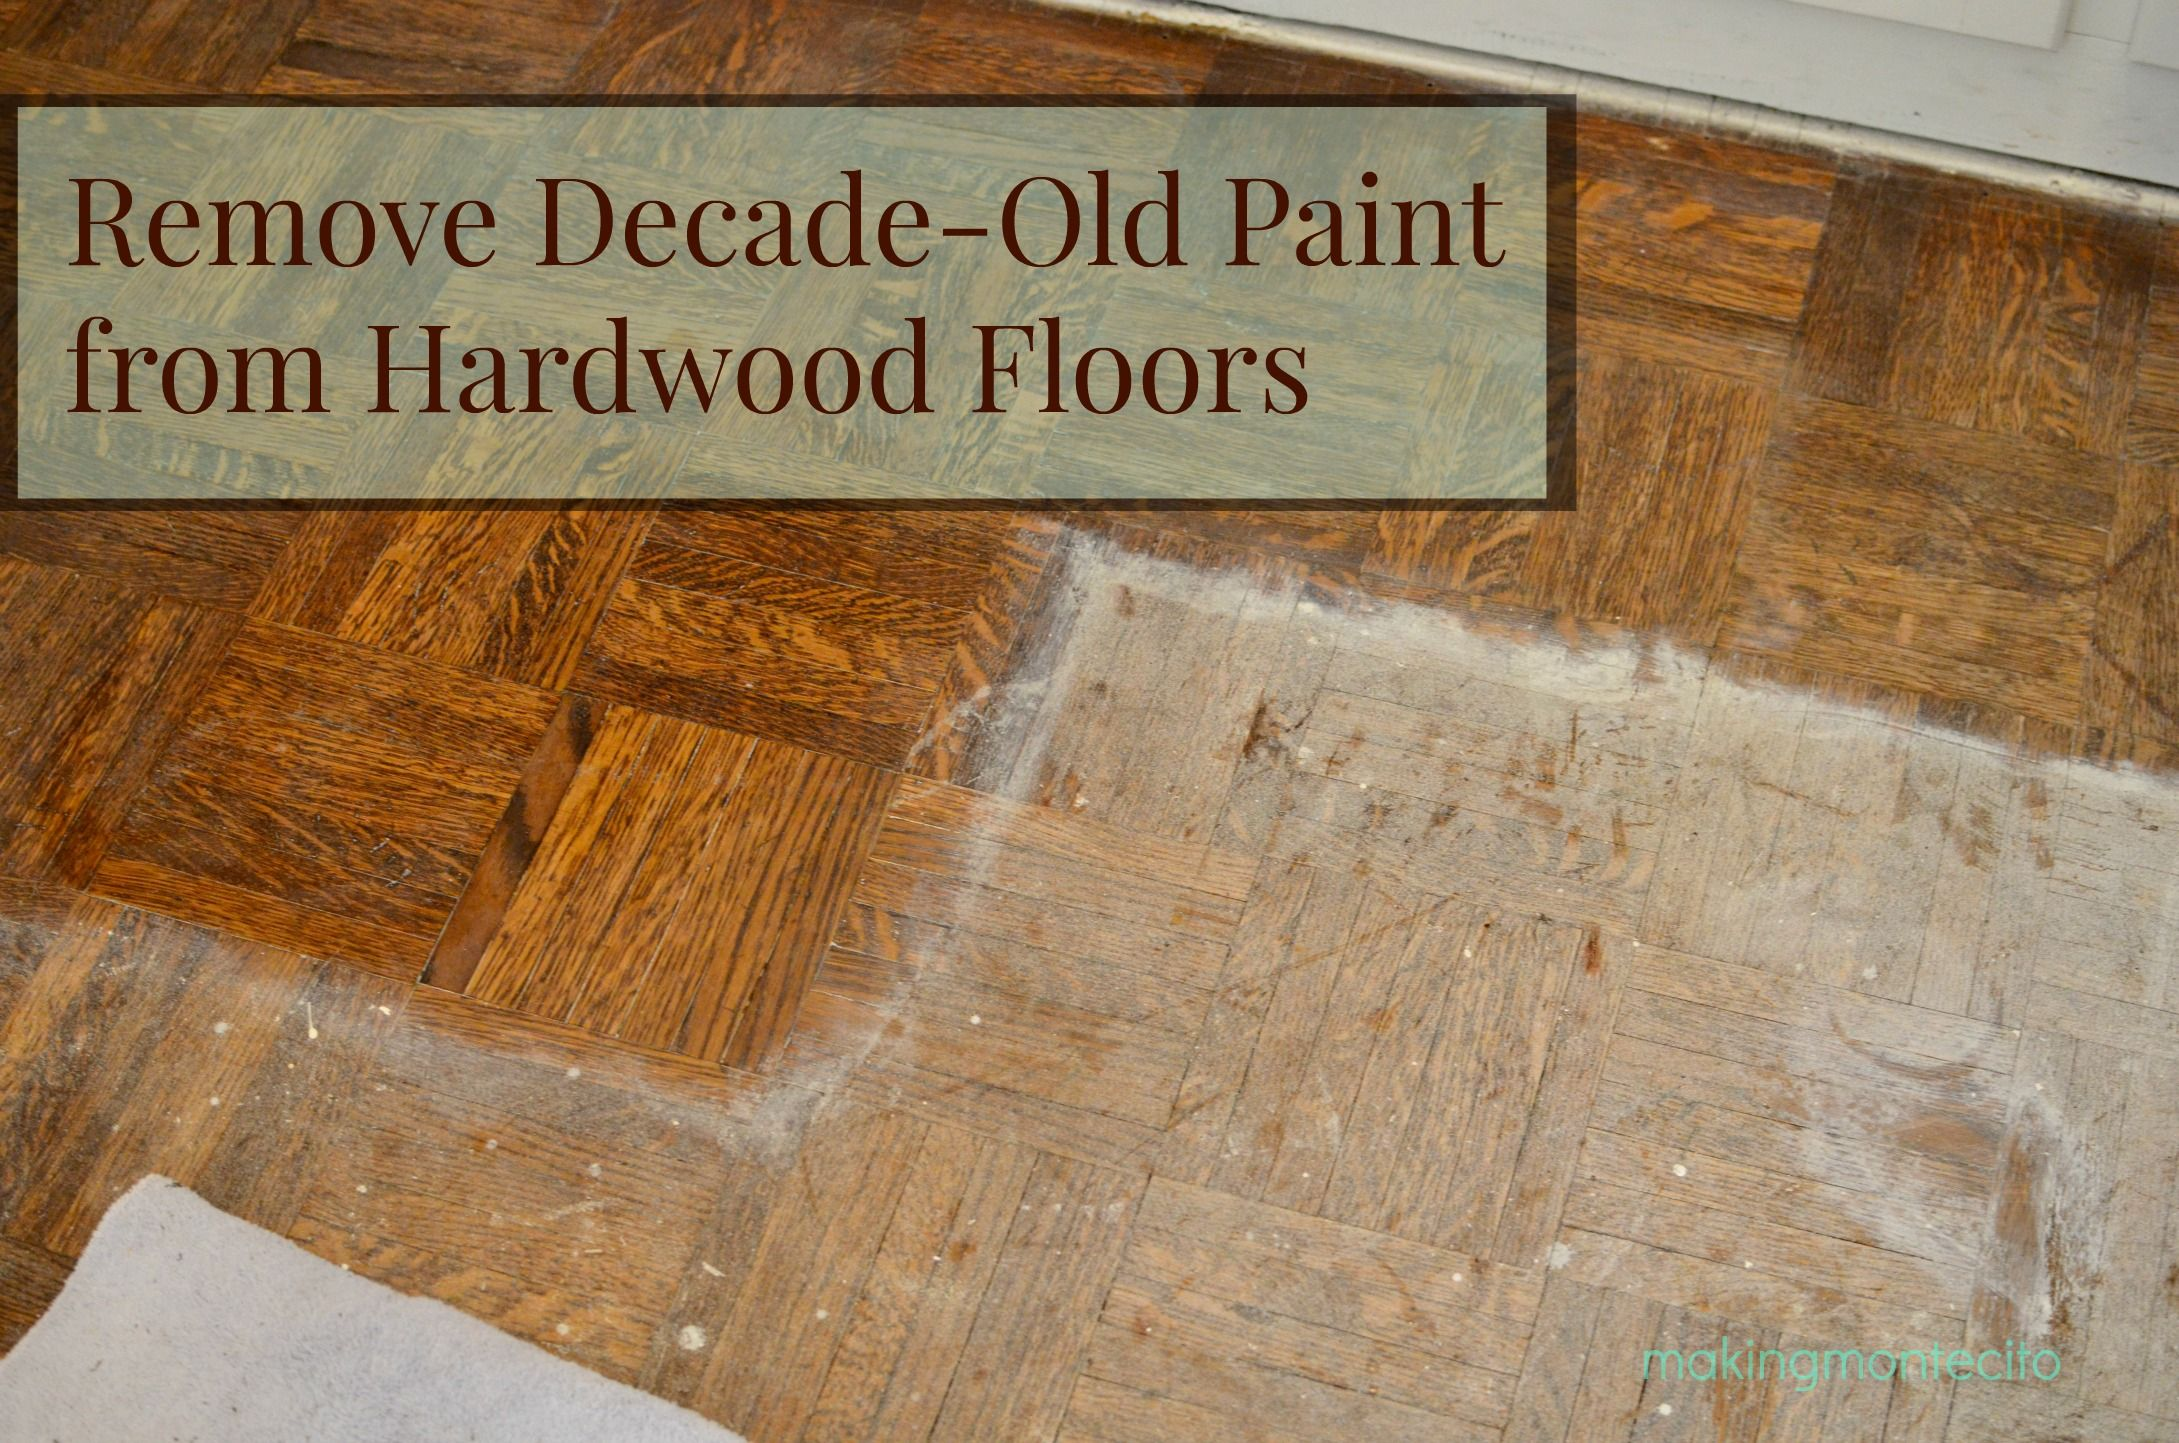 How Do You Remove Paint From Hardwood Floors In 2020 Flooring Removing Wood Remover